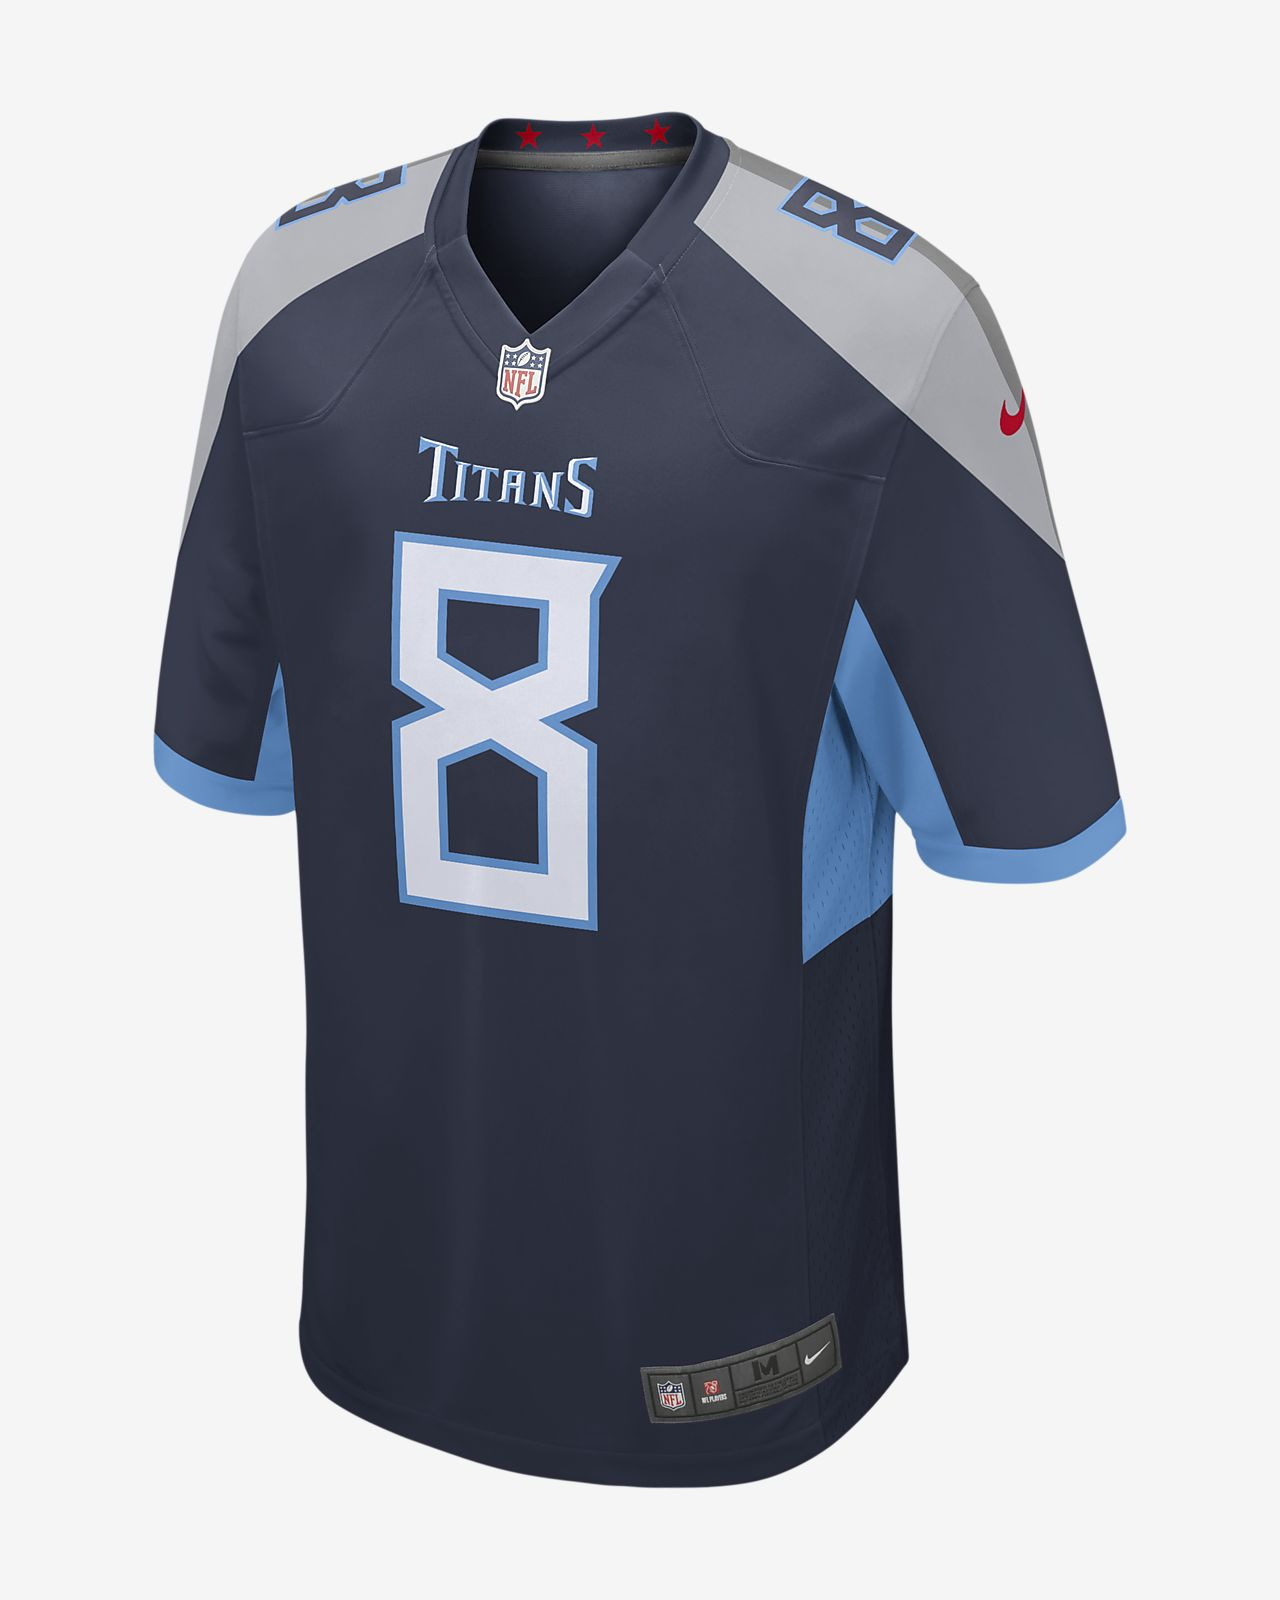 promo code 7db2c 2f28f NFL Tennessee Titans Game Jersey (Marcus Mariota) Men's American Football  Jersey